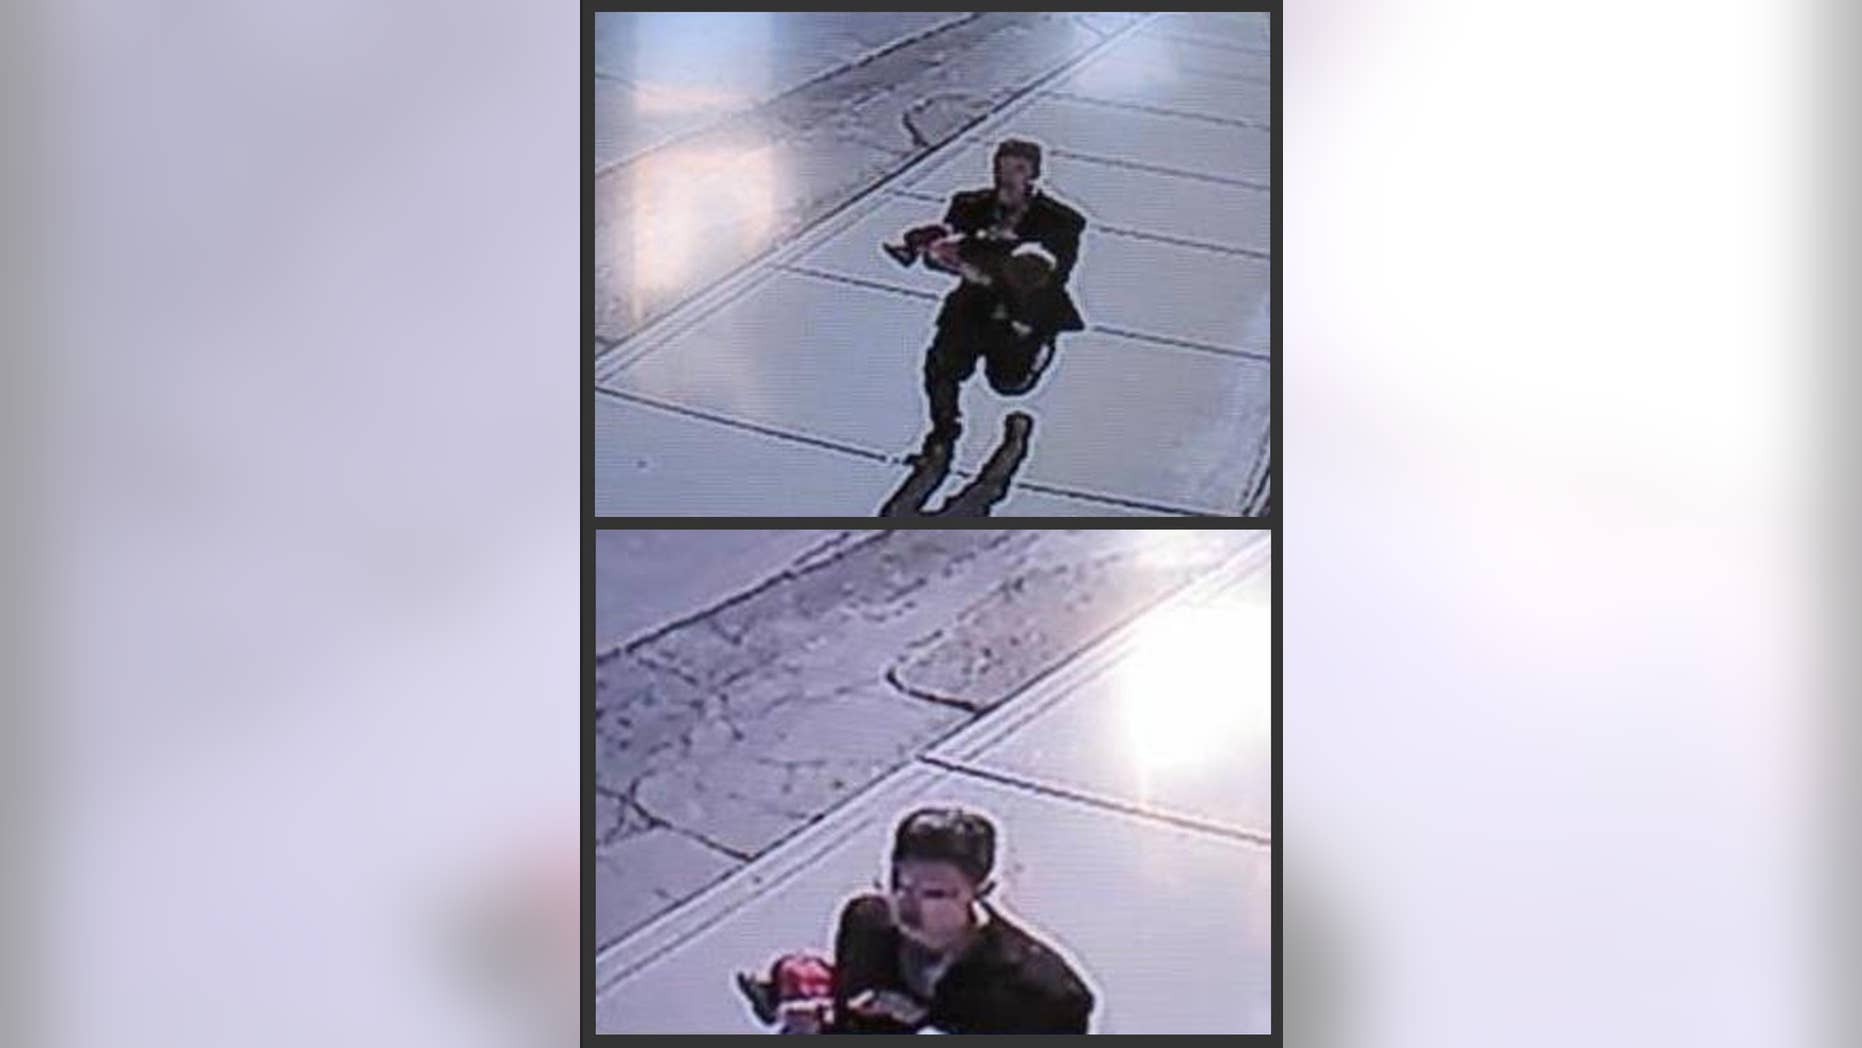 In this combination of still images taken from surveillance video on Sunday, March 8, 2015, and provided by the Lincoln County Sheriff's Office, a man runs down a street, carrying a toddler in an apparent kidnapping attempt in Sprague, Wash. The video shows the boy's young sister chasing after the man, who set the boy down and ran off. Lincoln County Sheriff Wade Magers says officers don't have any leads in the search for the suspect, but they don't believe the man is a resident of the town of about 500 people. The boy, 22-month-old Owen Wright, was unhurt. (AP Photo/Lincoln County Sheriff's Office)